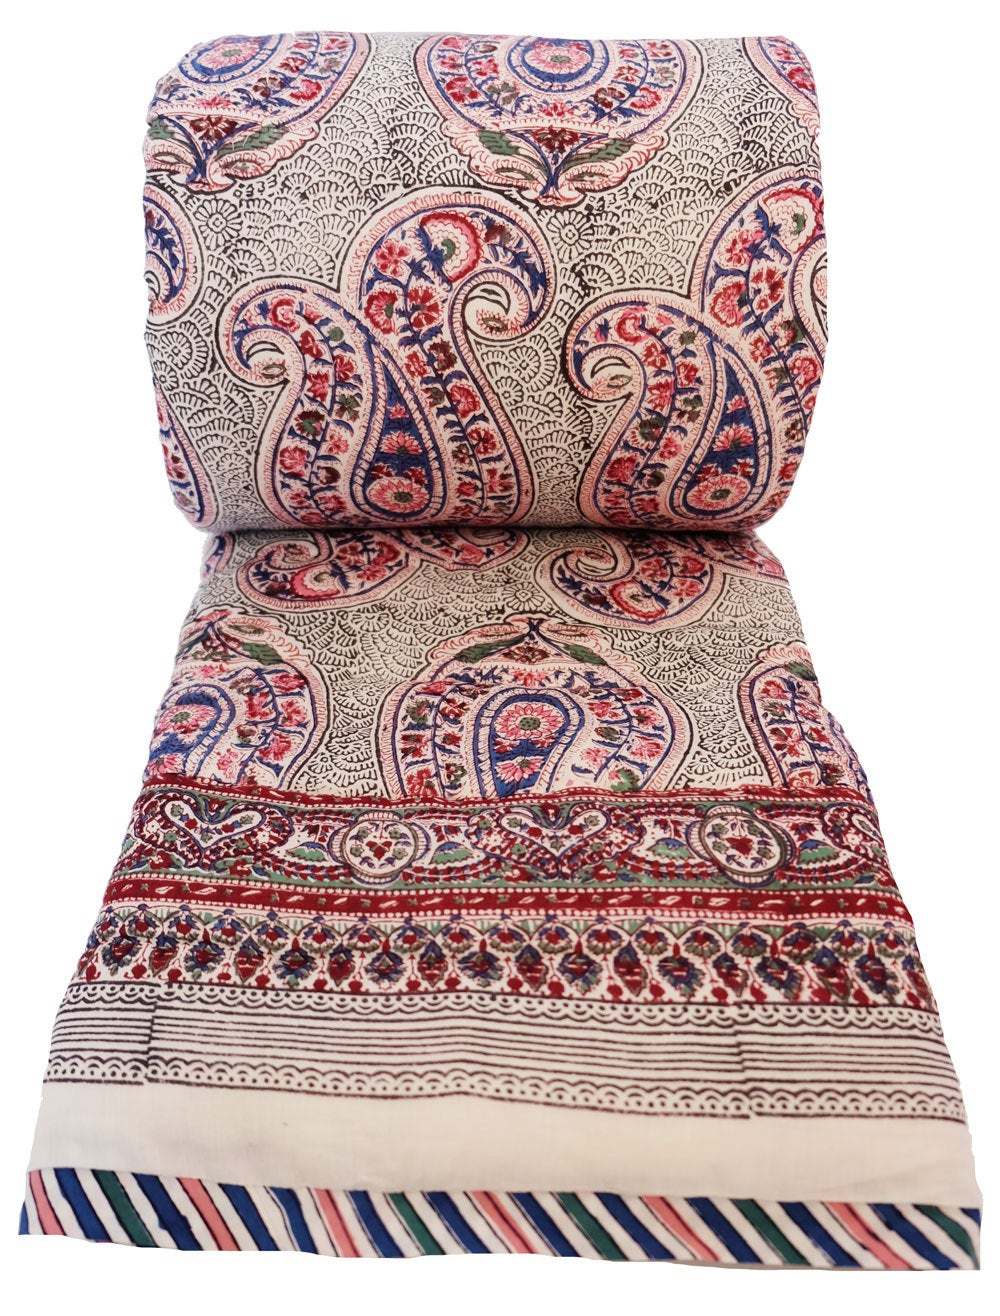 Russin Paisley Ink - Twin 70 x 108 - 100% cotton, reversible quilt. - Anokhi